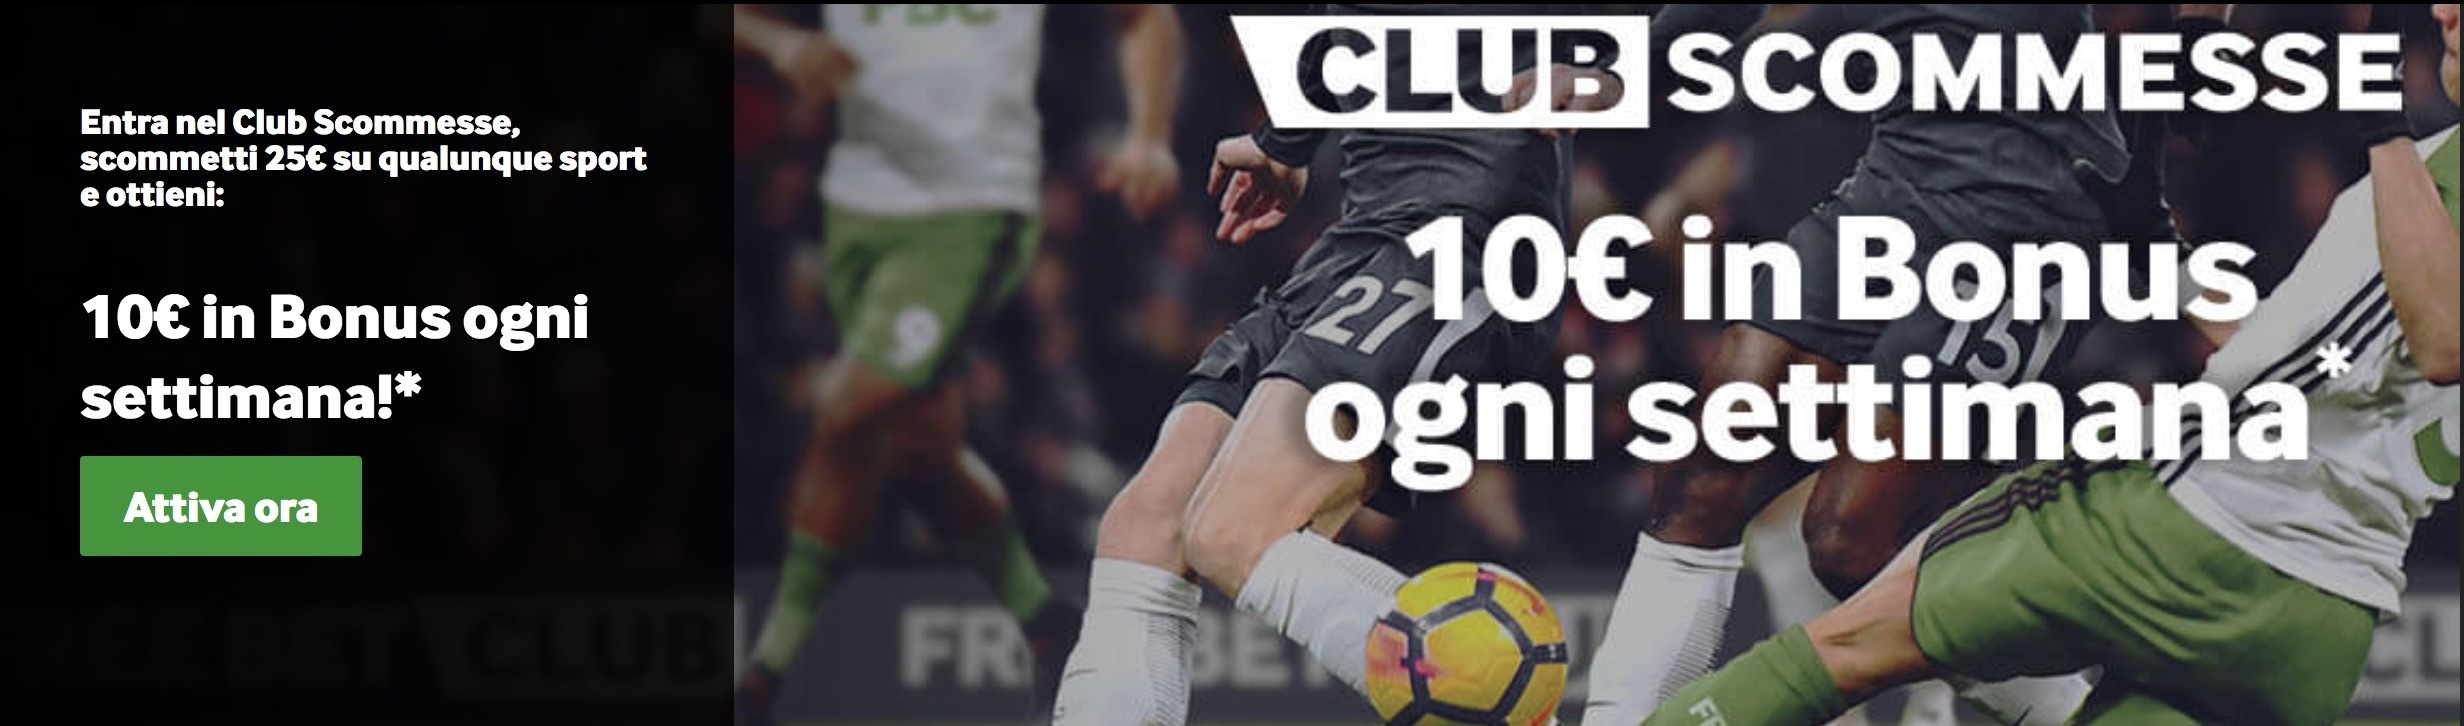 Betway Club Scommesse Promo